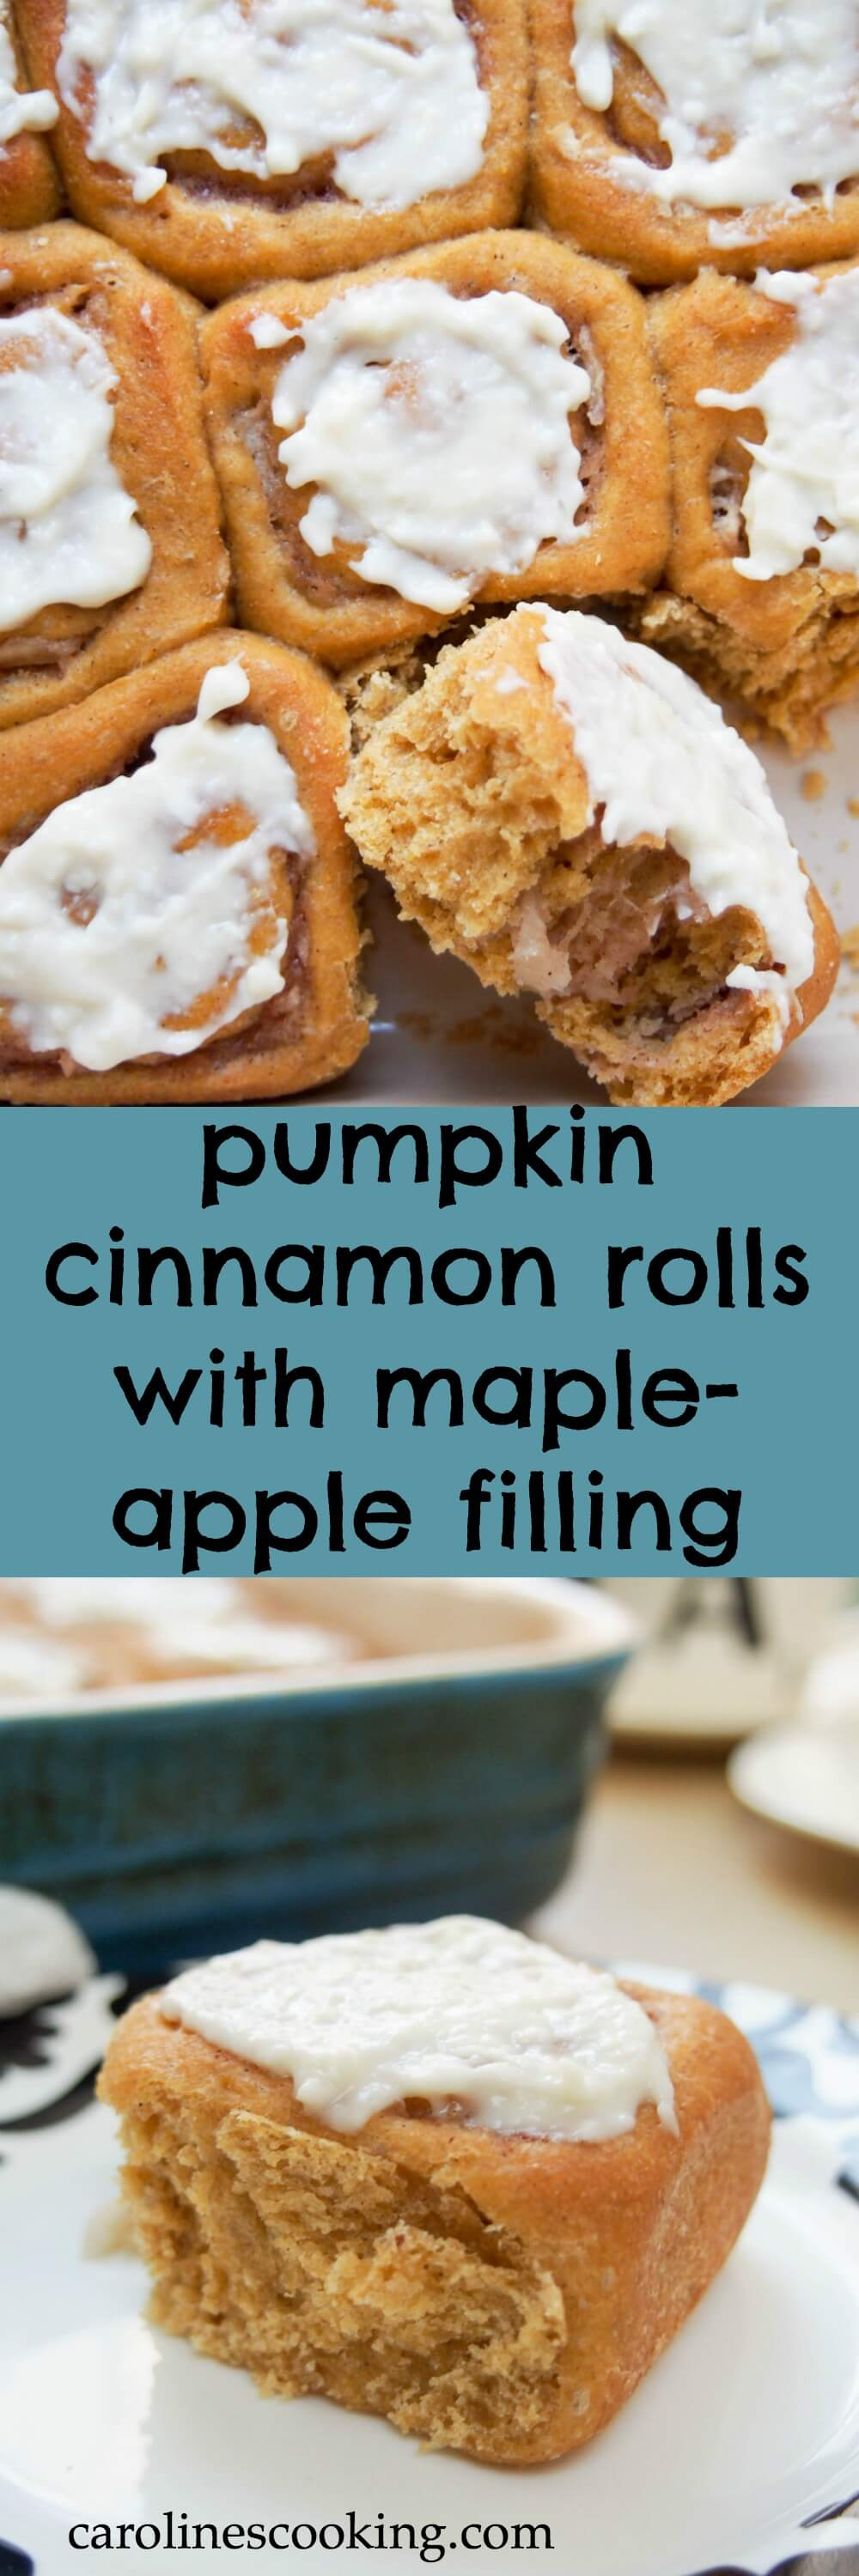 Pumpkin cinnamon rolls with maple-apple filling - a healthier and very fall-inspired version of the classic treat, made with wholewheat flour and no refined sugar, but so delicious!